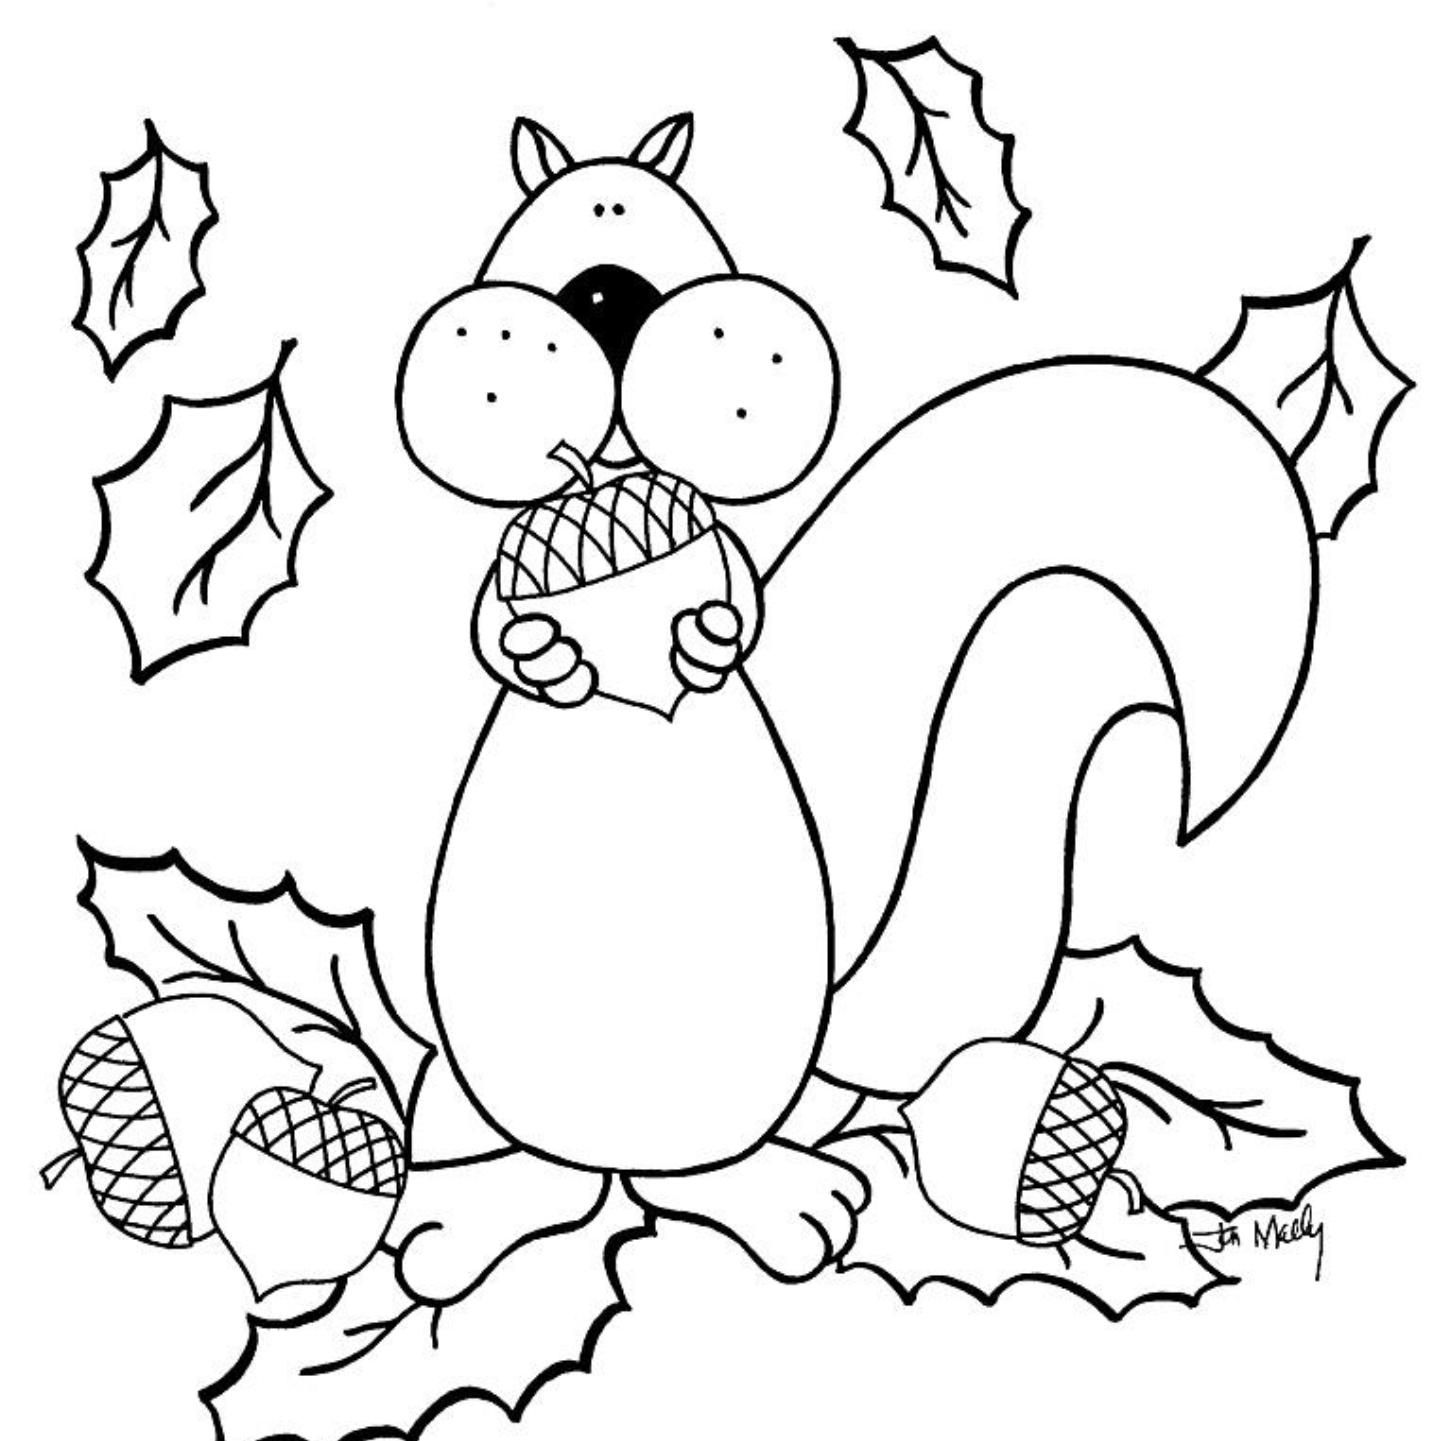 Spring coloring sheets for preschool - Coloring Fall Coloring Pages Coloring Pages For All Ages